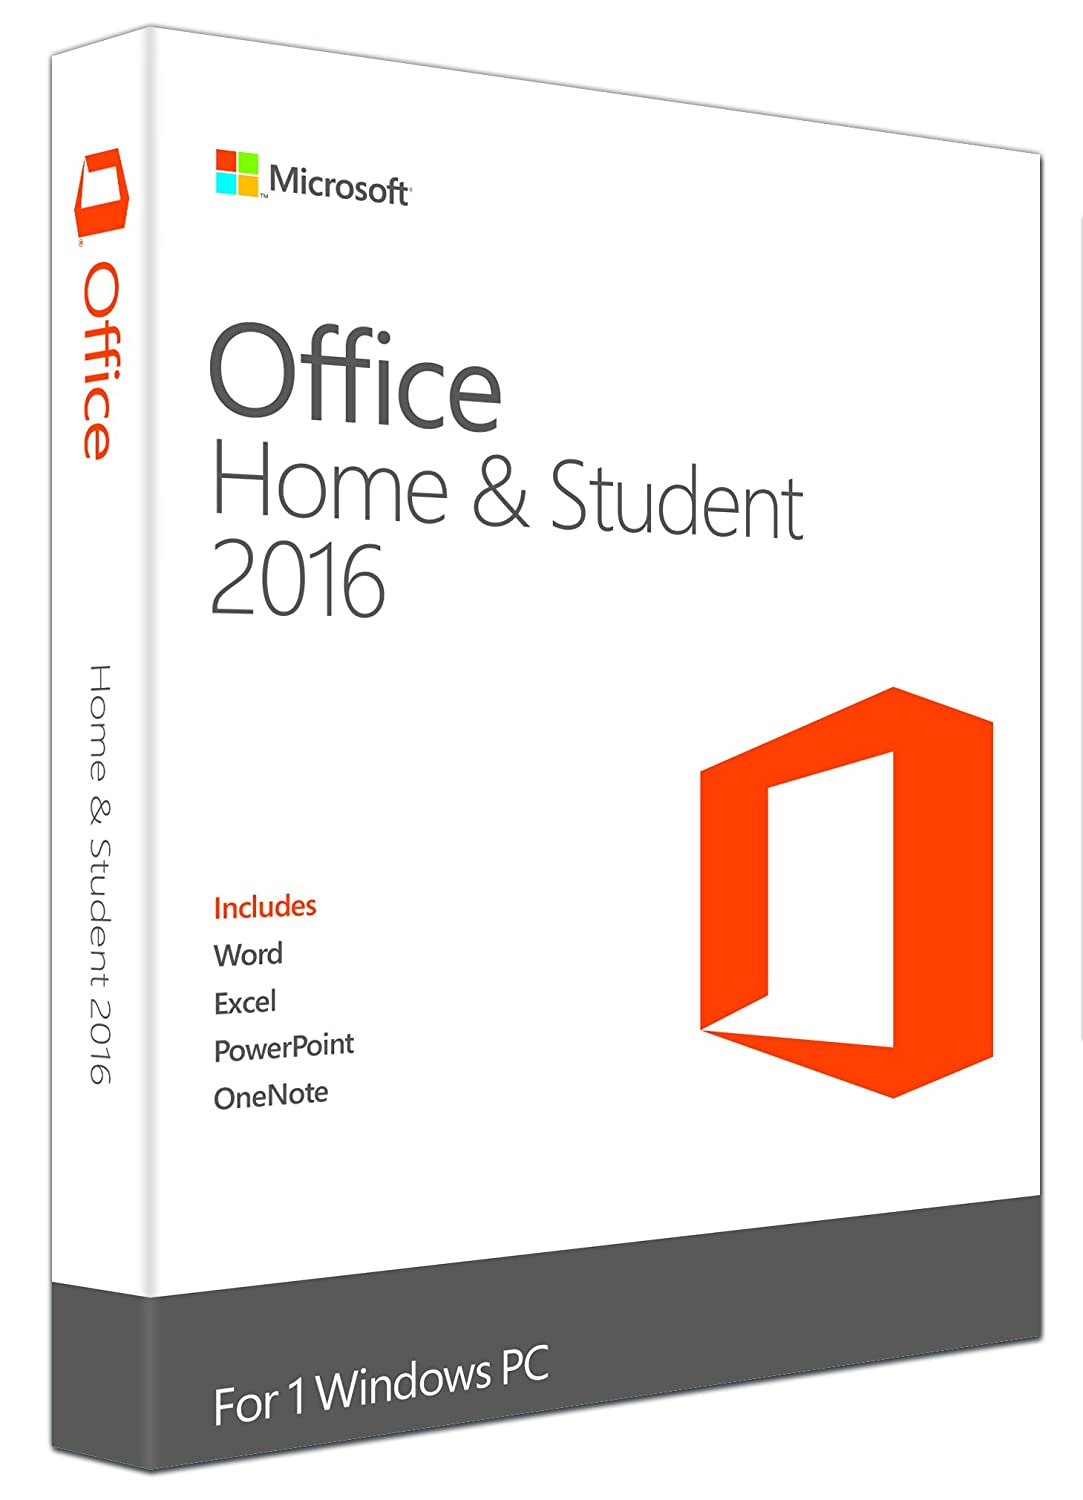 microsoft office 2016 windows torrent download